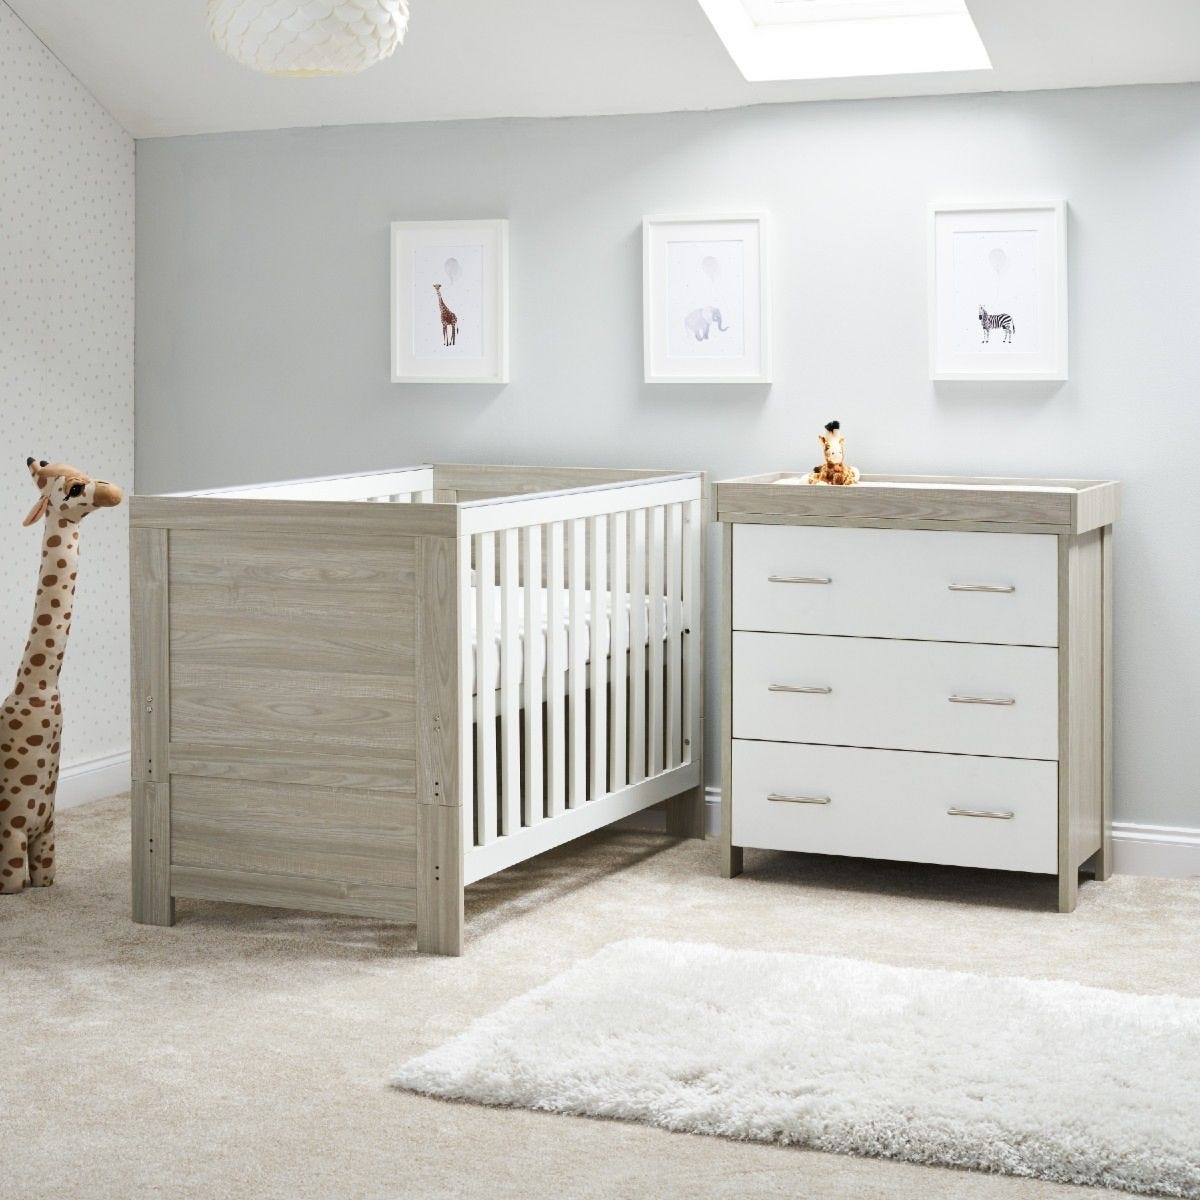 OBaby Nika 2 Piece Room Set Grey Wash and White